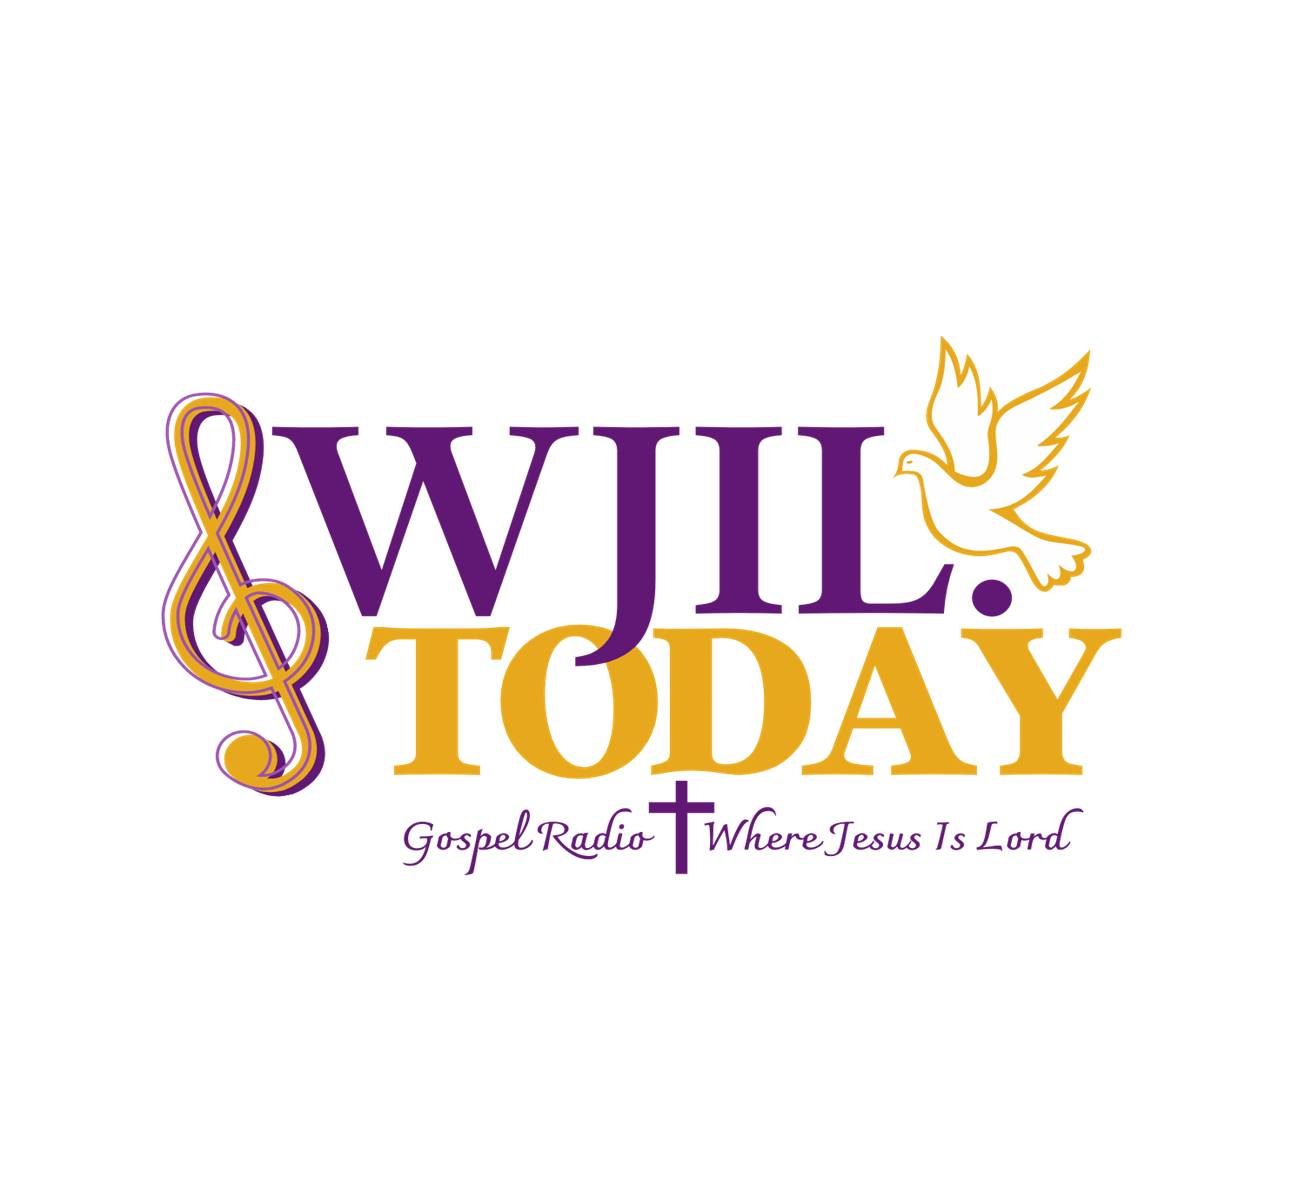 WJIL.Today- 'Where Jesus Is Lord' Today logo